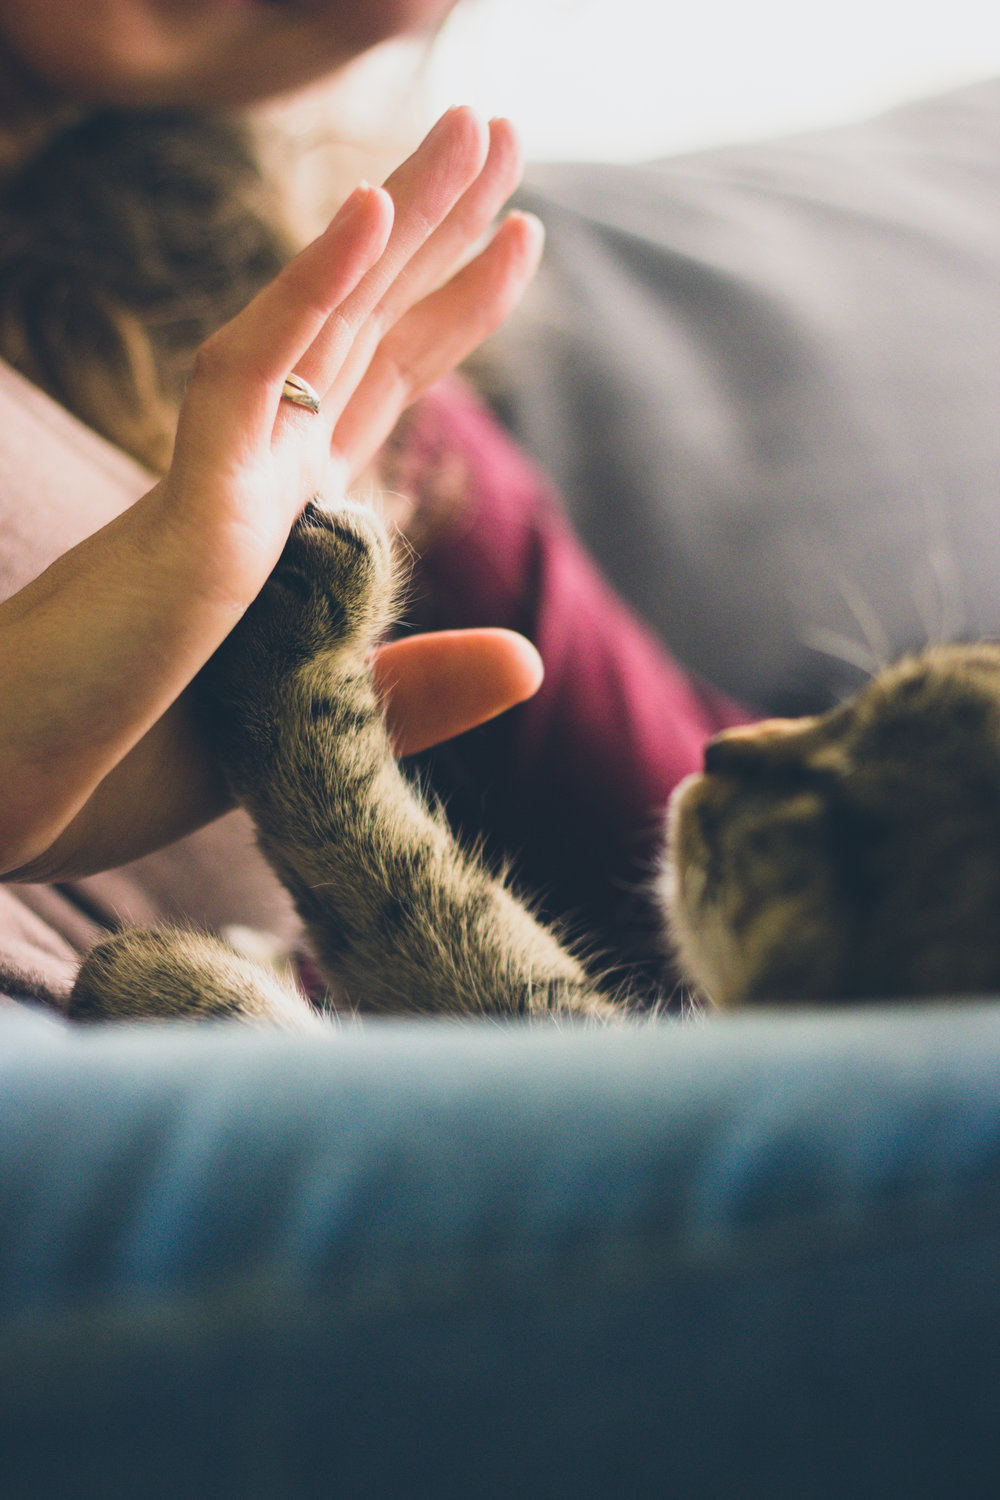 A high five for all you awesome cat owners!